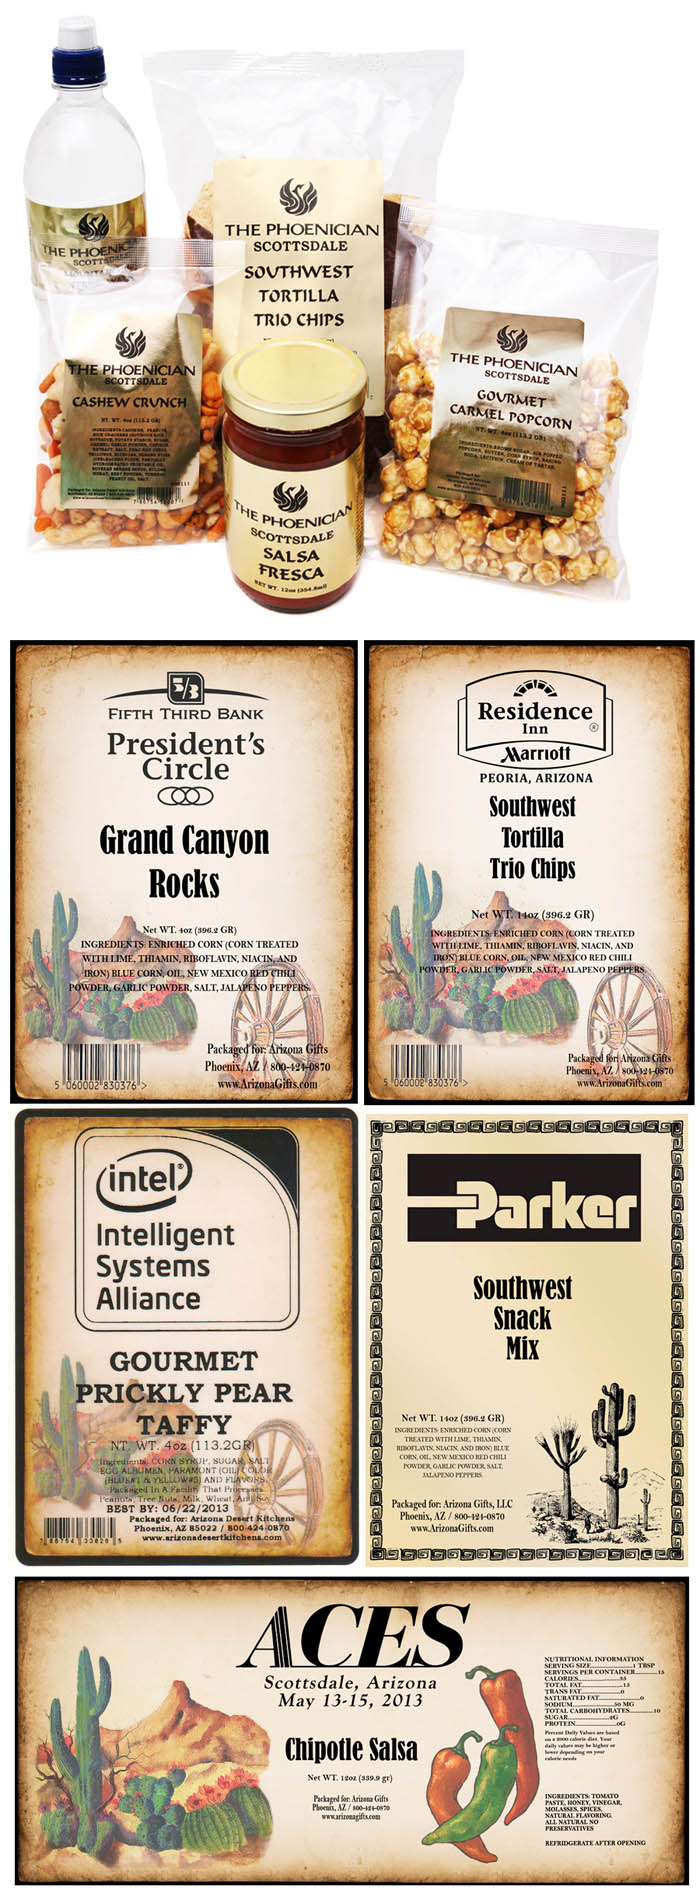 Private Label food, custom labels promotional items